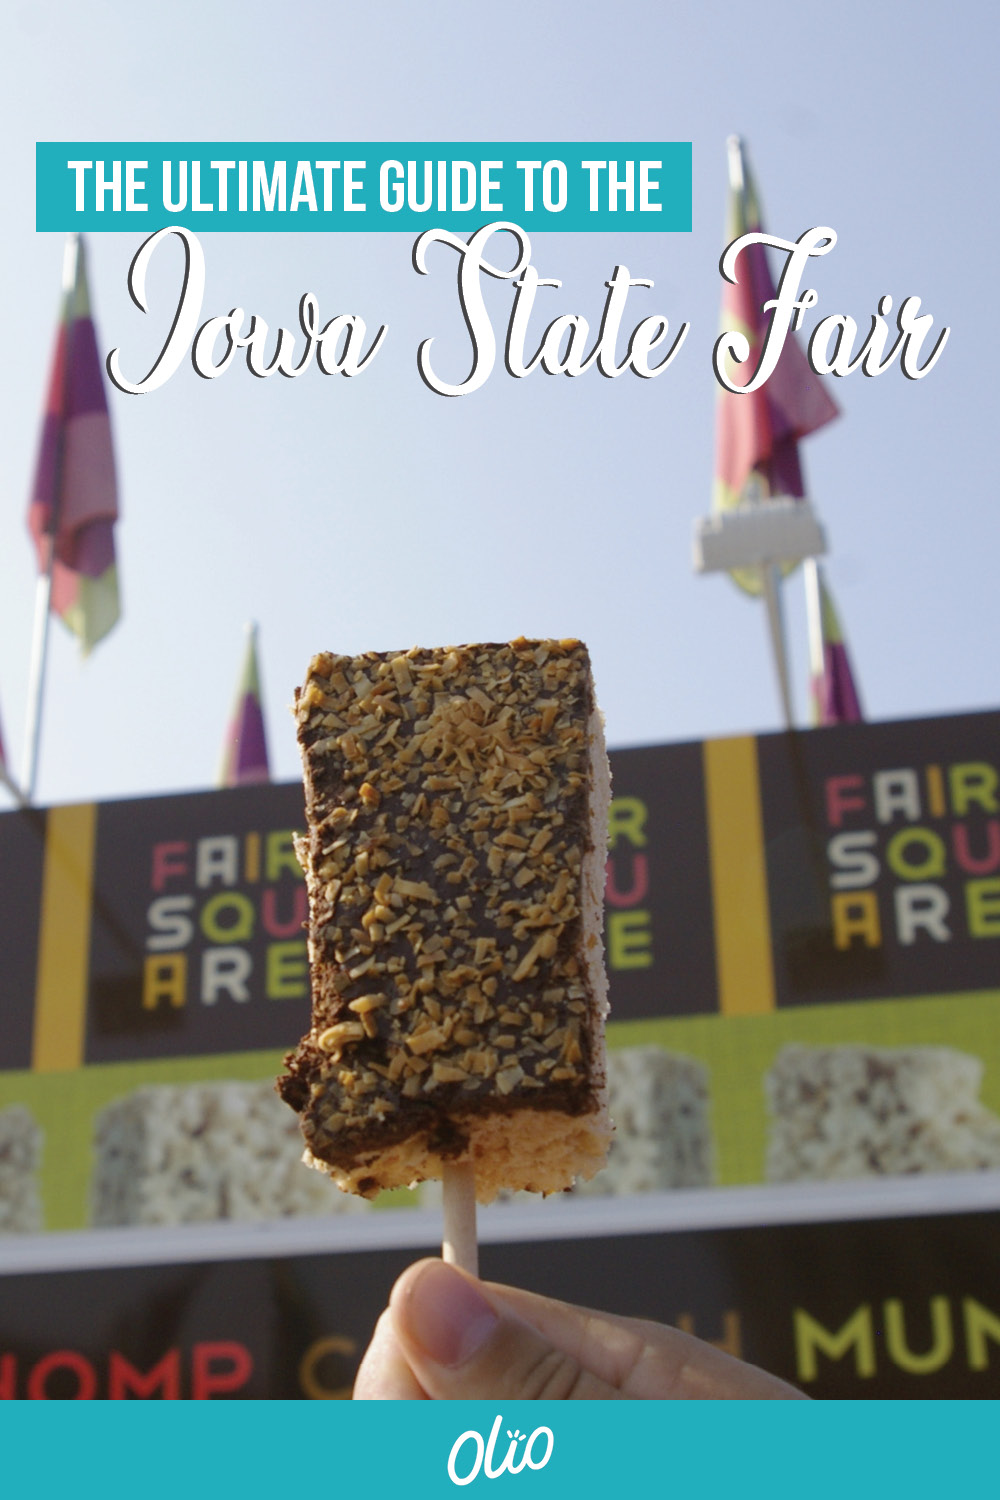 Nothing compares to the Iowa State Fair! With endless things to do and all sorts of food on a stick, this is an Iowa tradition you shouldn't miss. Experience the butter cow, ride the sky glider, and so much more during this annual event. Discover everything you need to know before your visit with this handy guide to the Iowa State Fair!